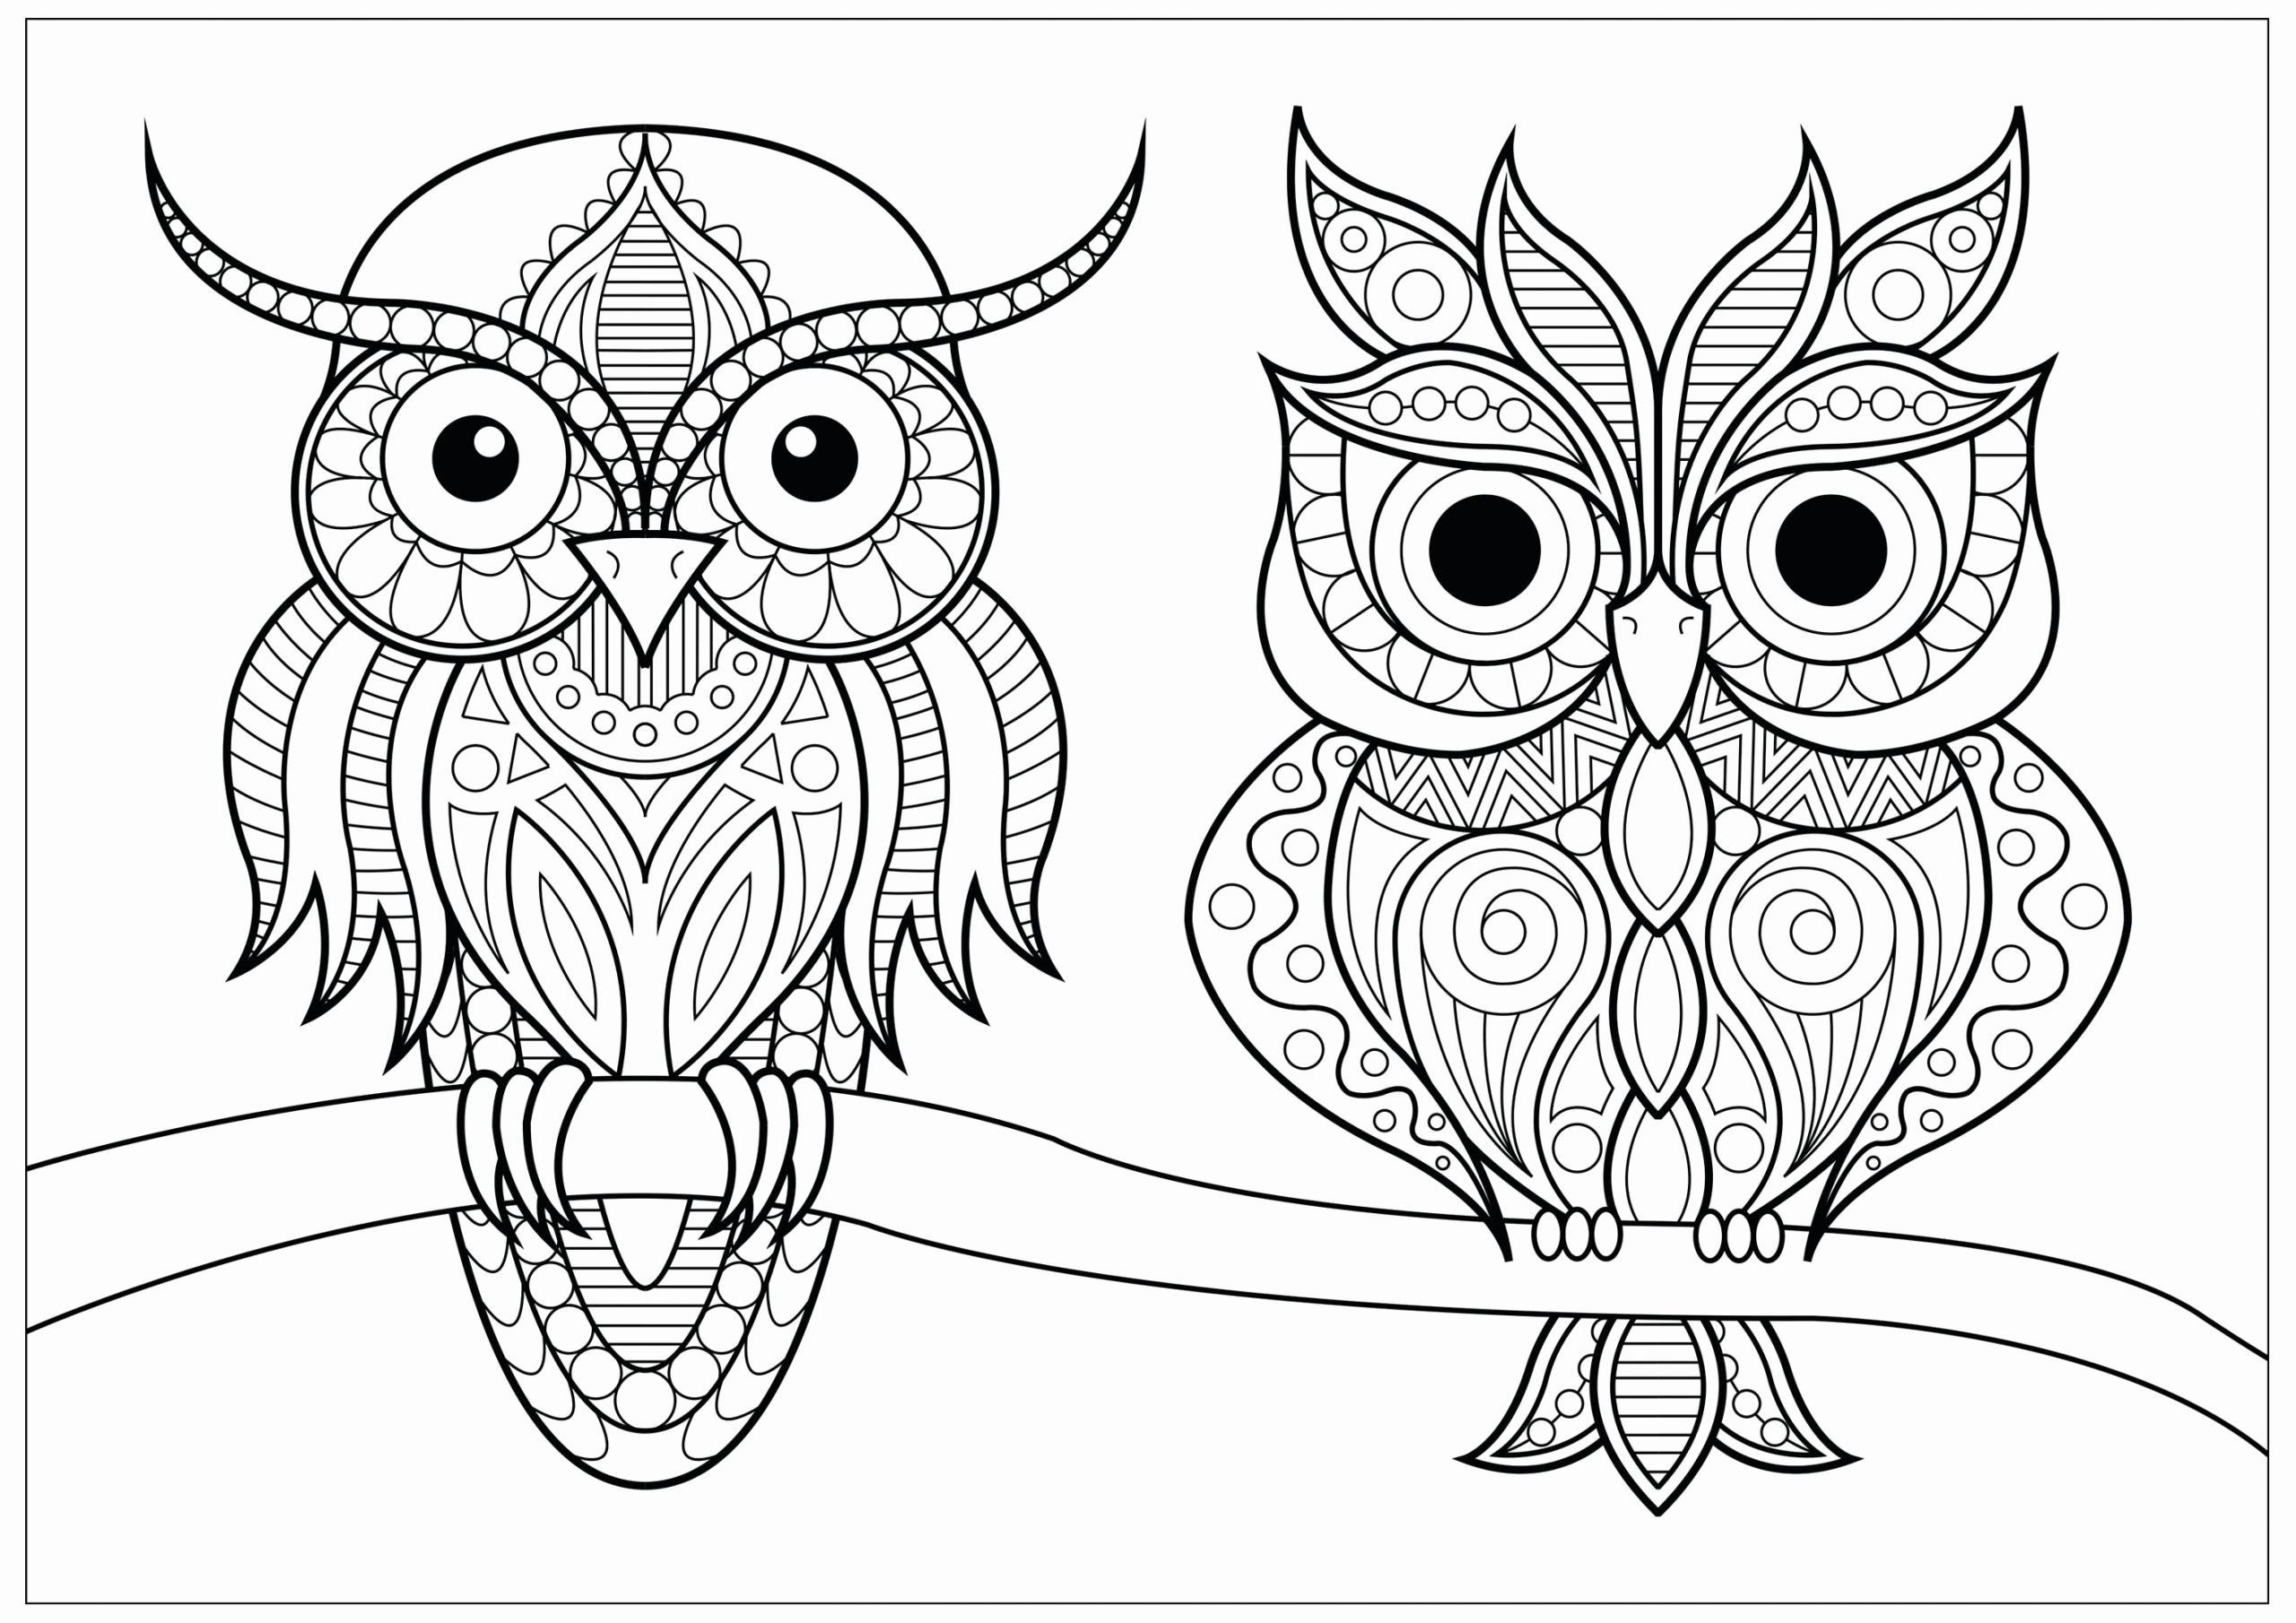 Owl Coloring Books For Adults Luxury Two Owls With Simple Patterns